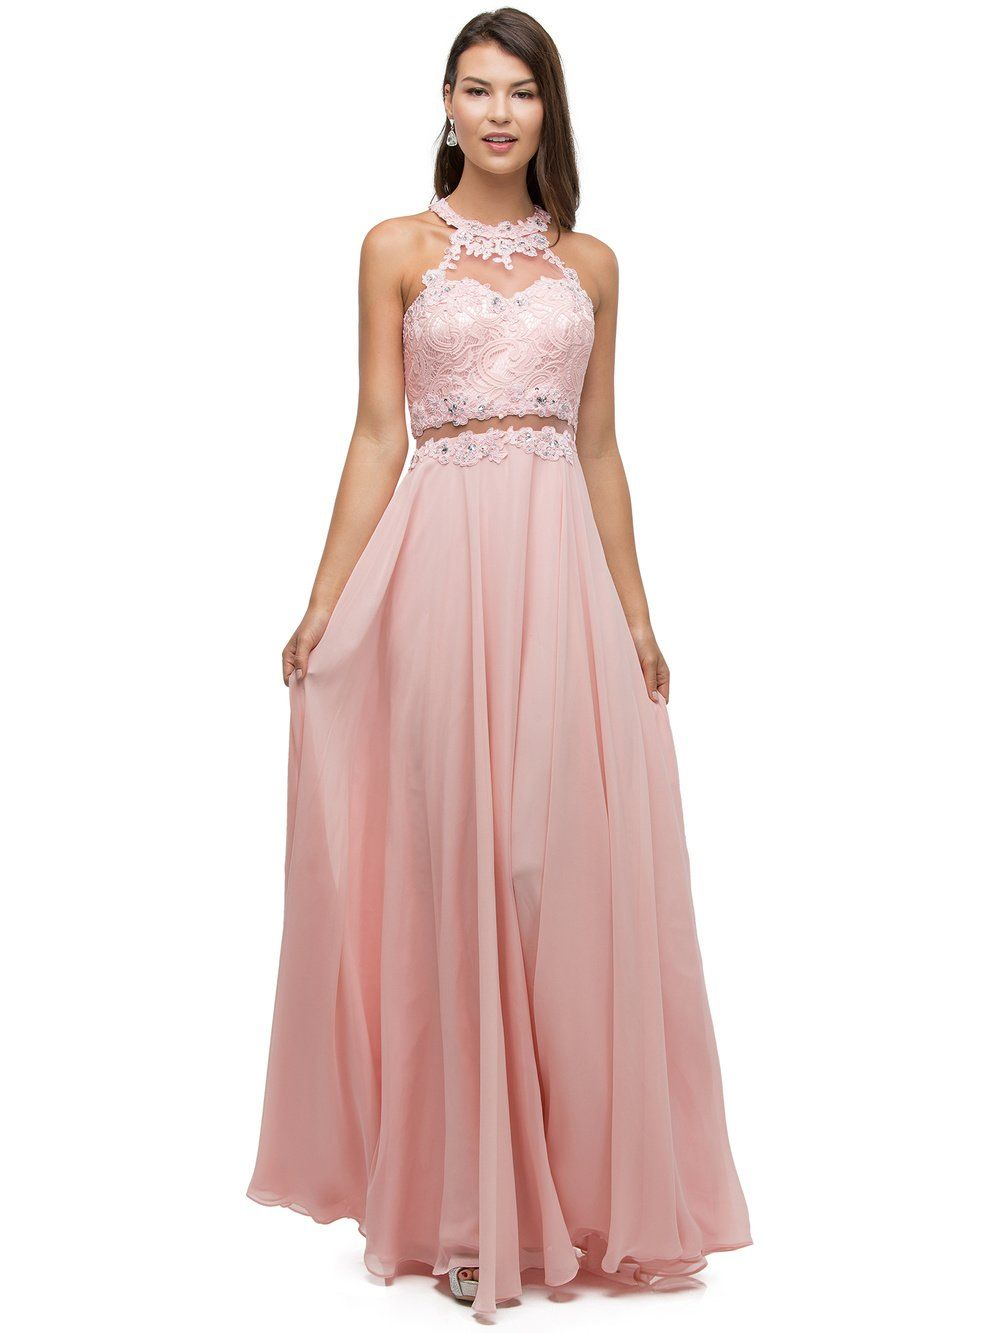 Lace mock Two-Piece cute Prom Dress DQ9548 - CLOSEOUT | Lace bodice ...